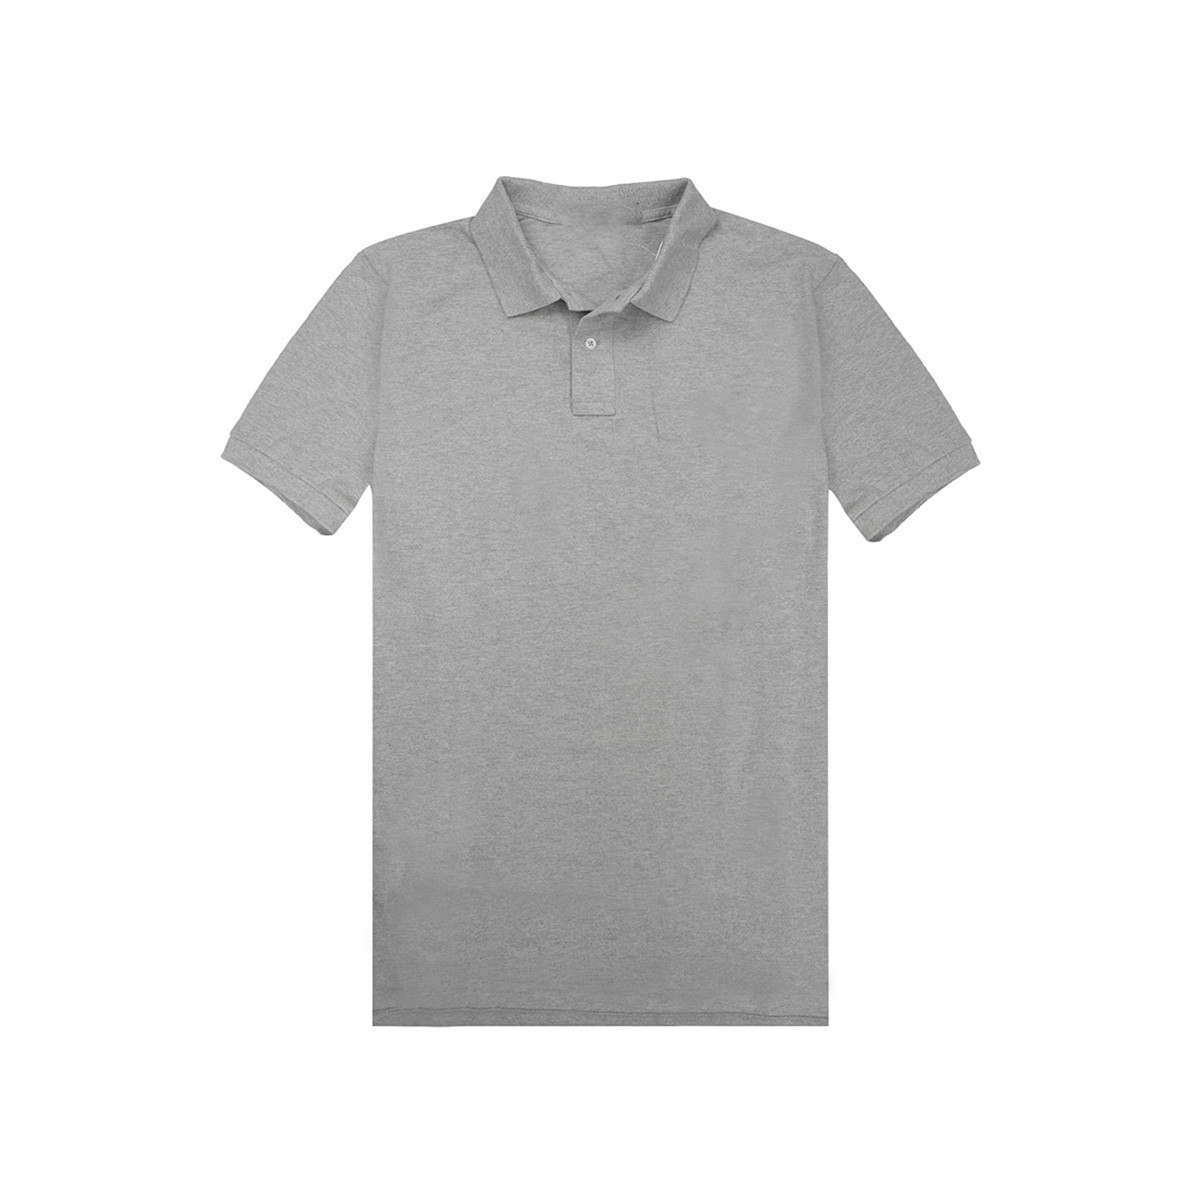 solid color product good quality pique free sample polo shirt